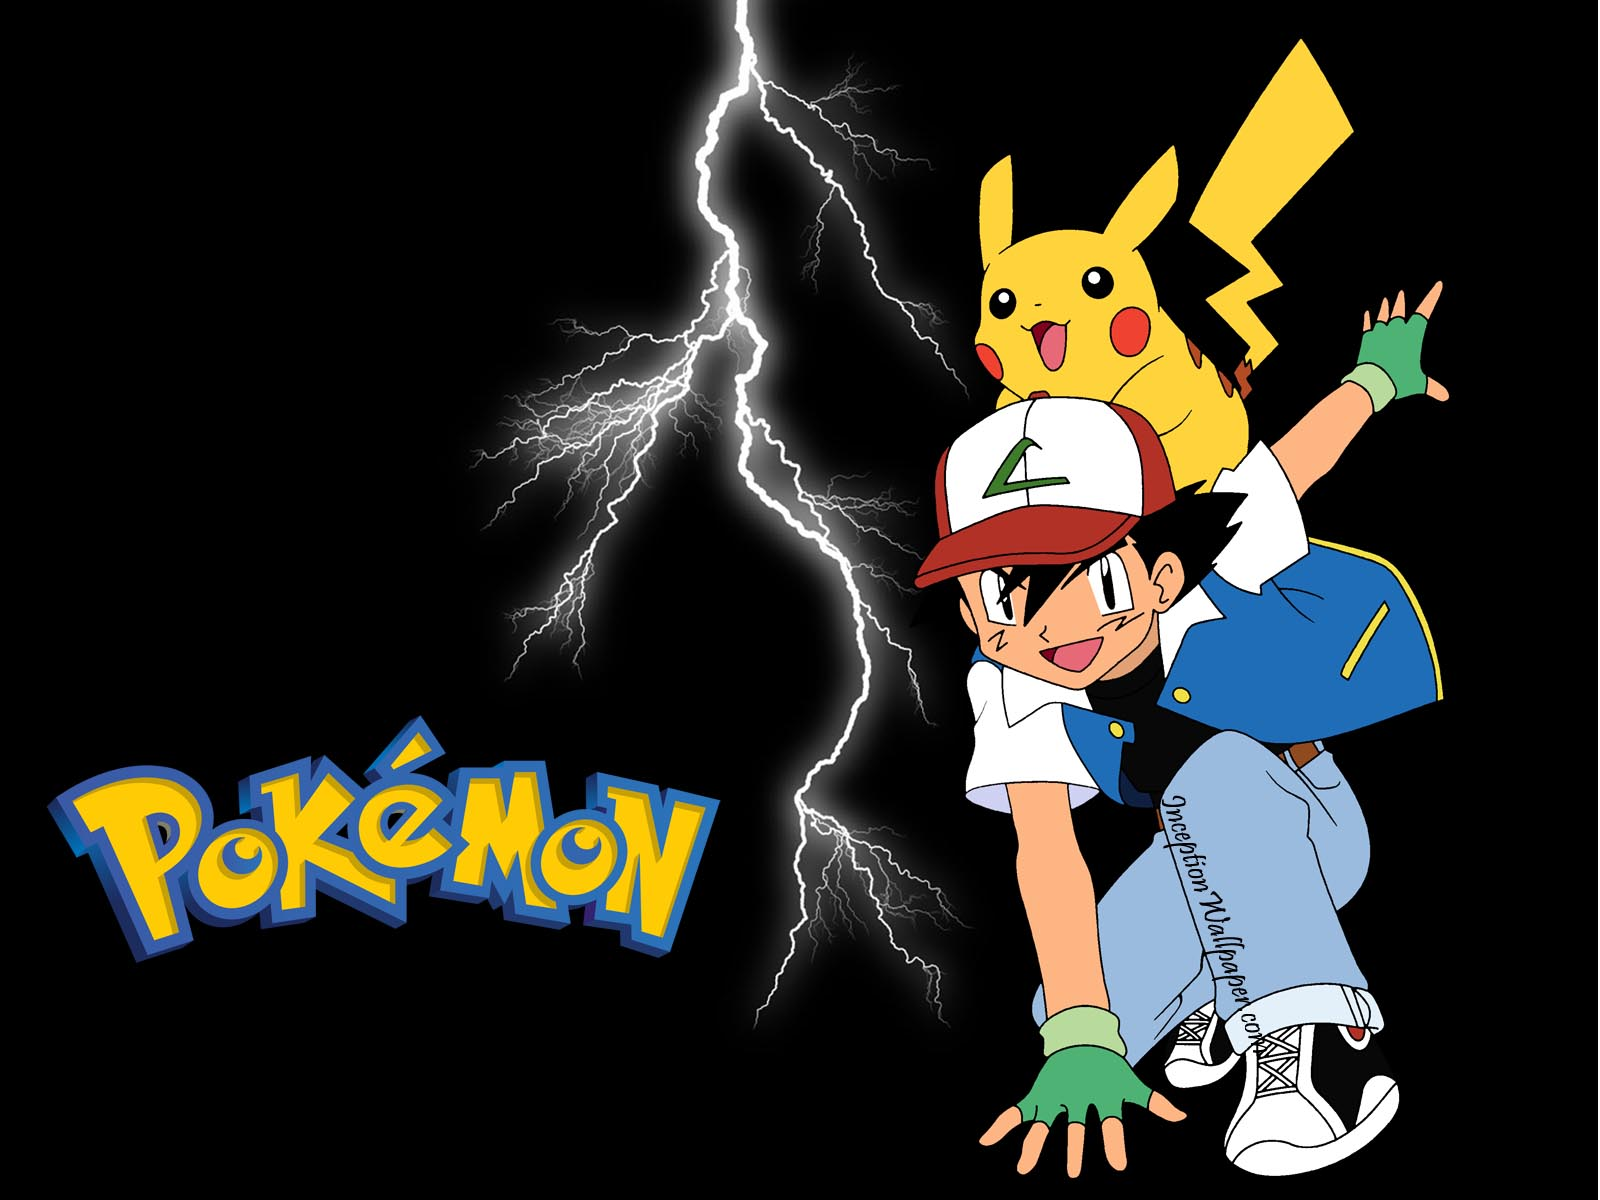 Pokemon Wallpaper Pikachu And Ash 1600x1200